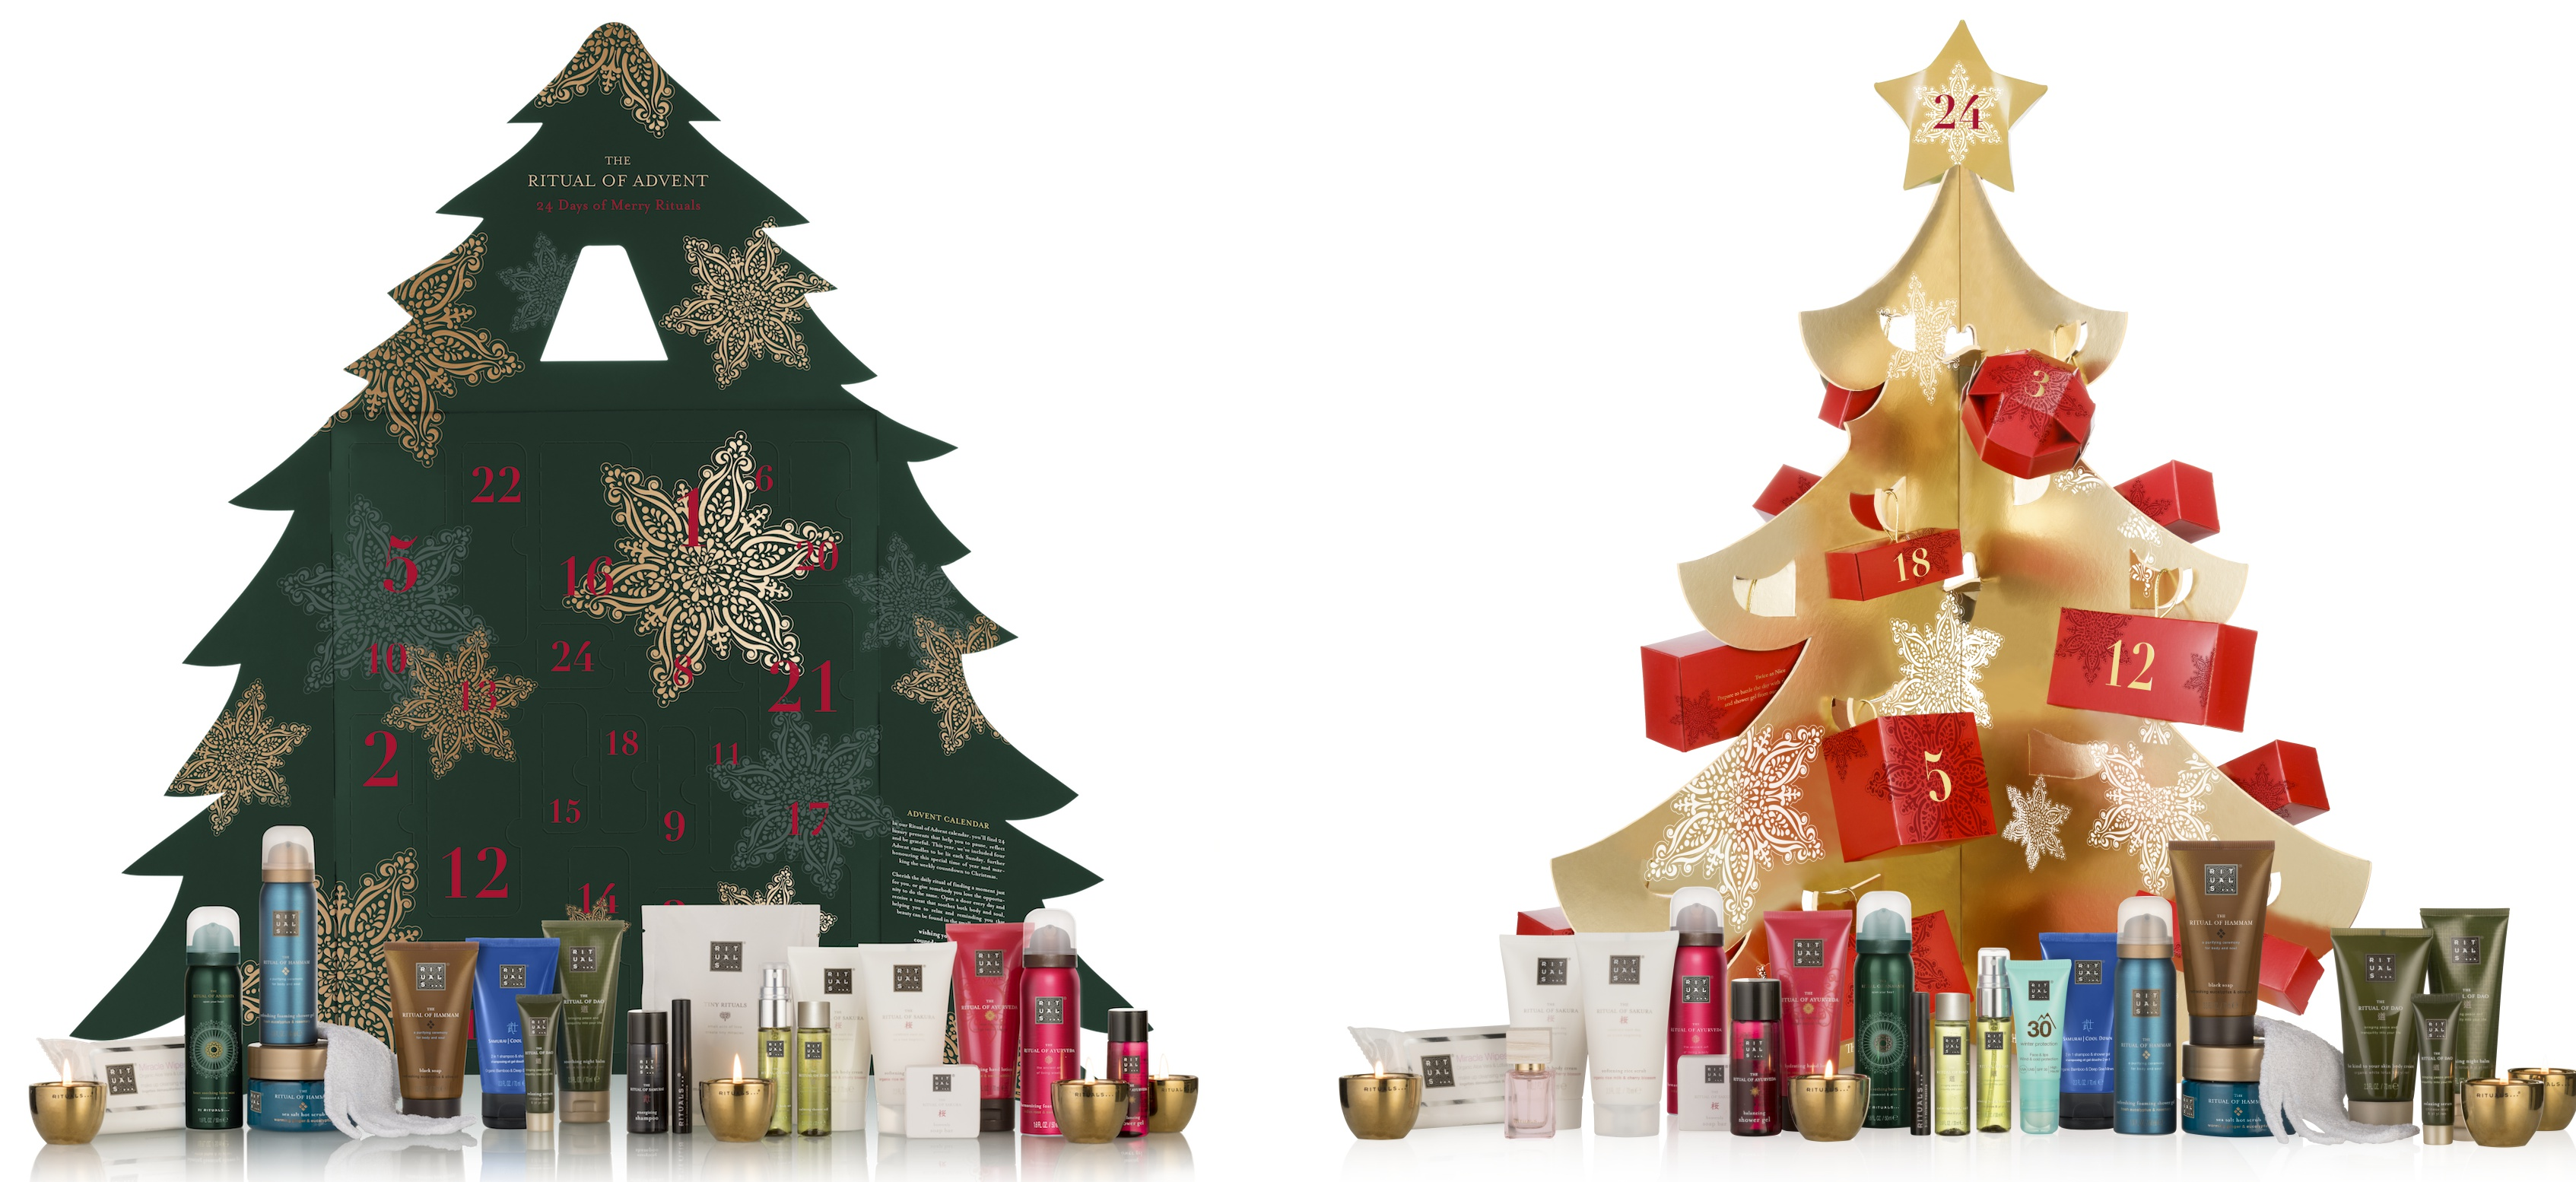 Adventskalender Rituals Beauty Advent Calendar 2017 Marks And Spencer Liberty